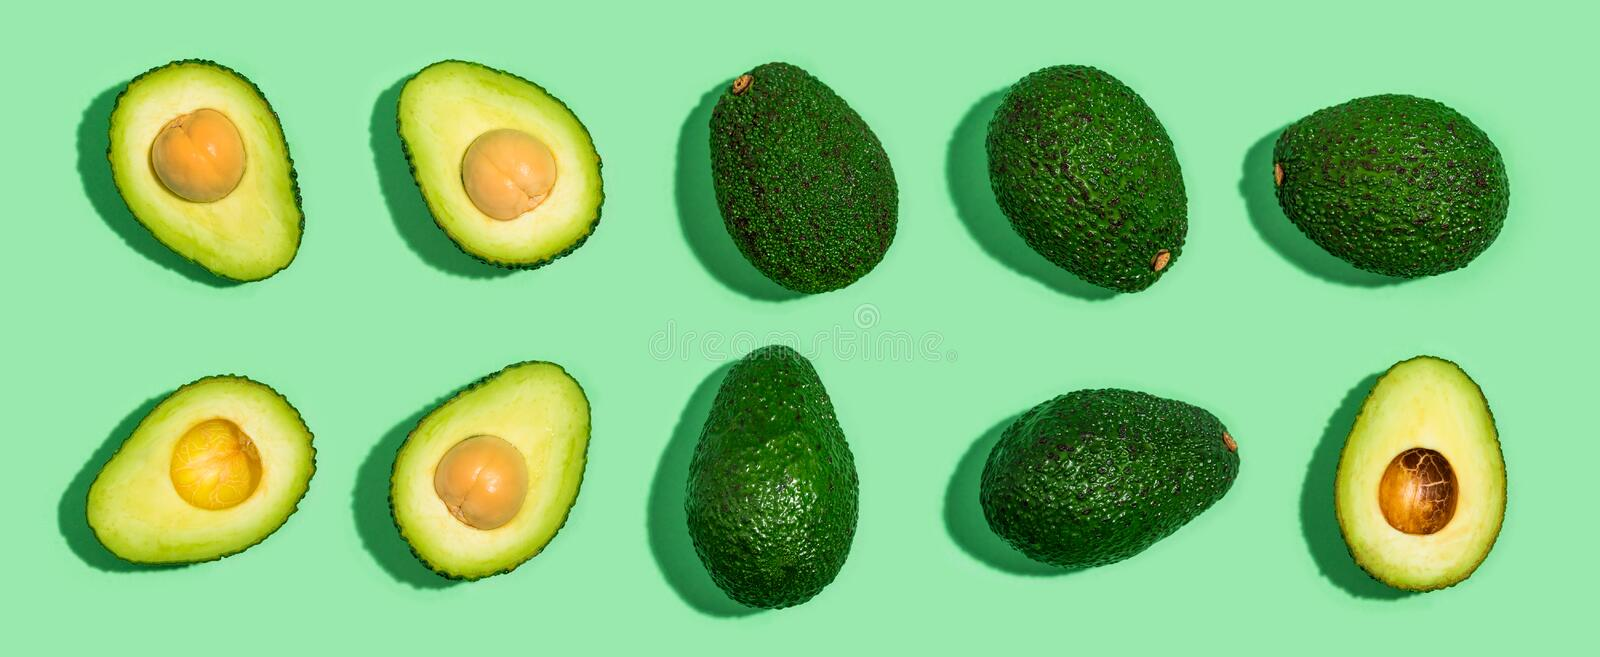 Fresh avocado pattern on a green background royalty free stock photos